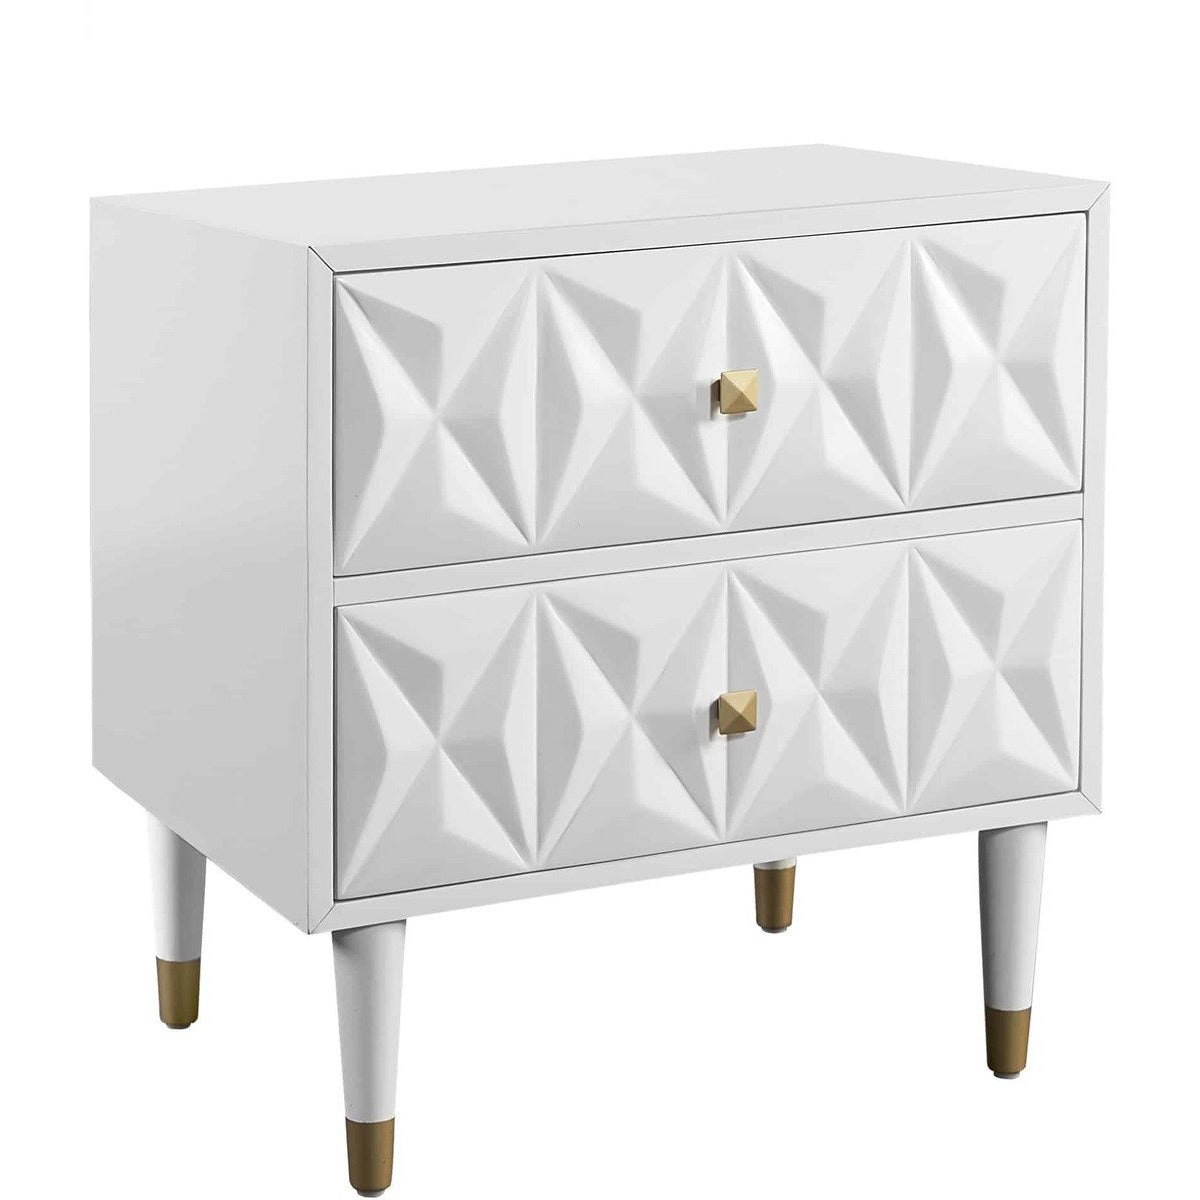 Nightstands - Modern Style Wooden Nightstand With Two Storage Drawers,White And Gold